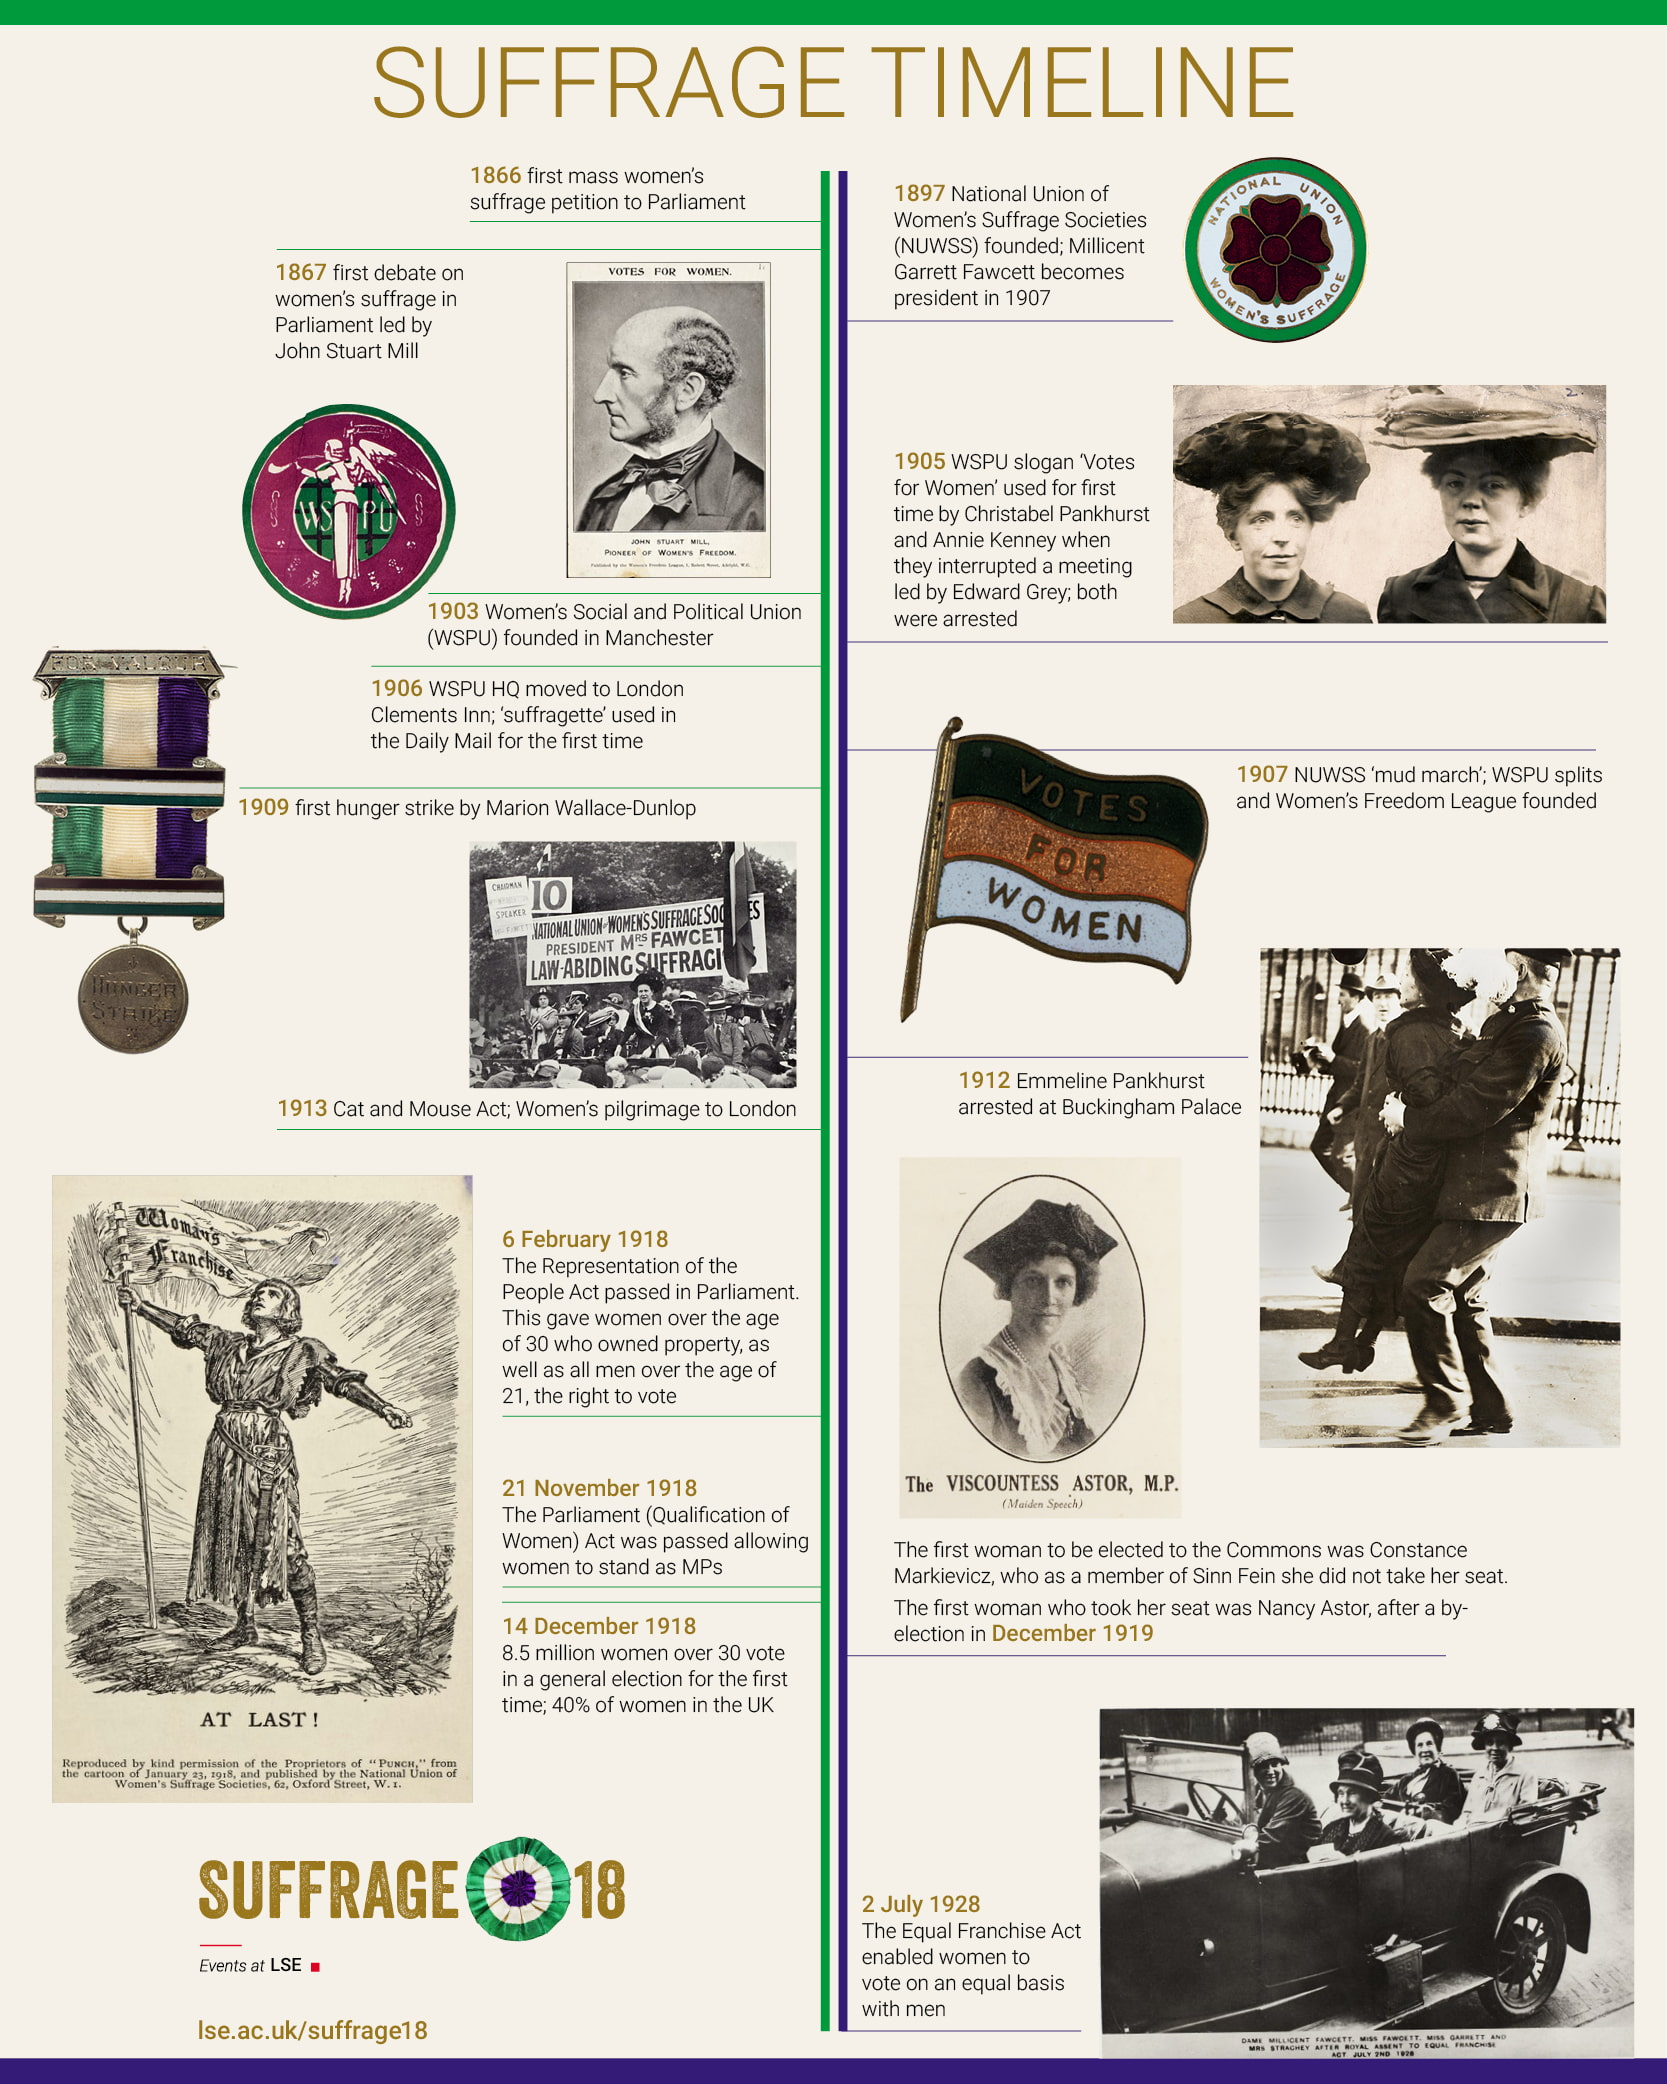 A timeline showing the march toward the act of suffrage in 1918